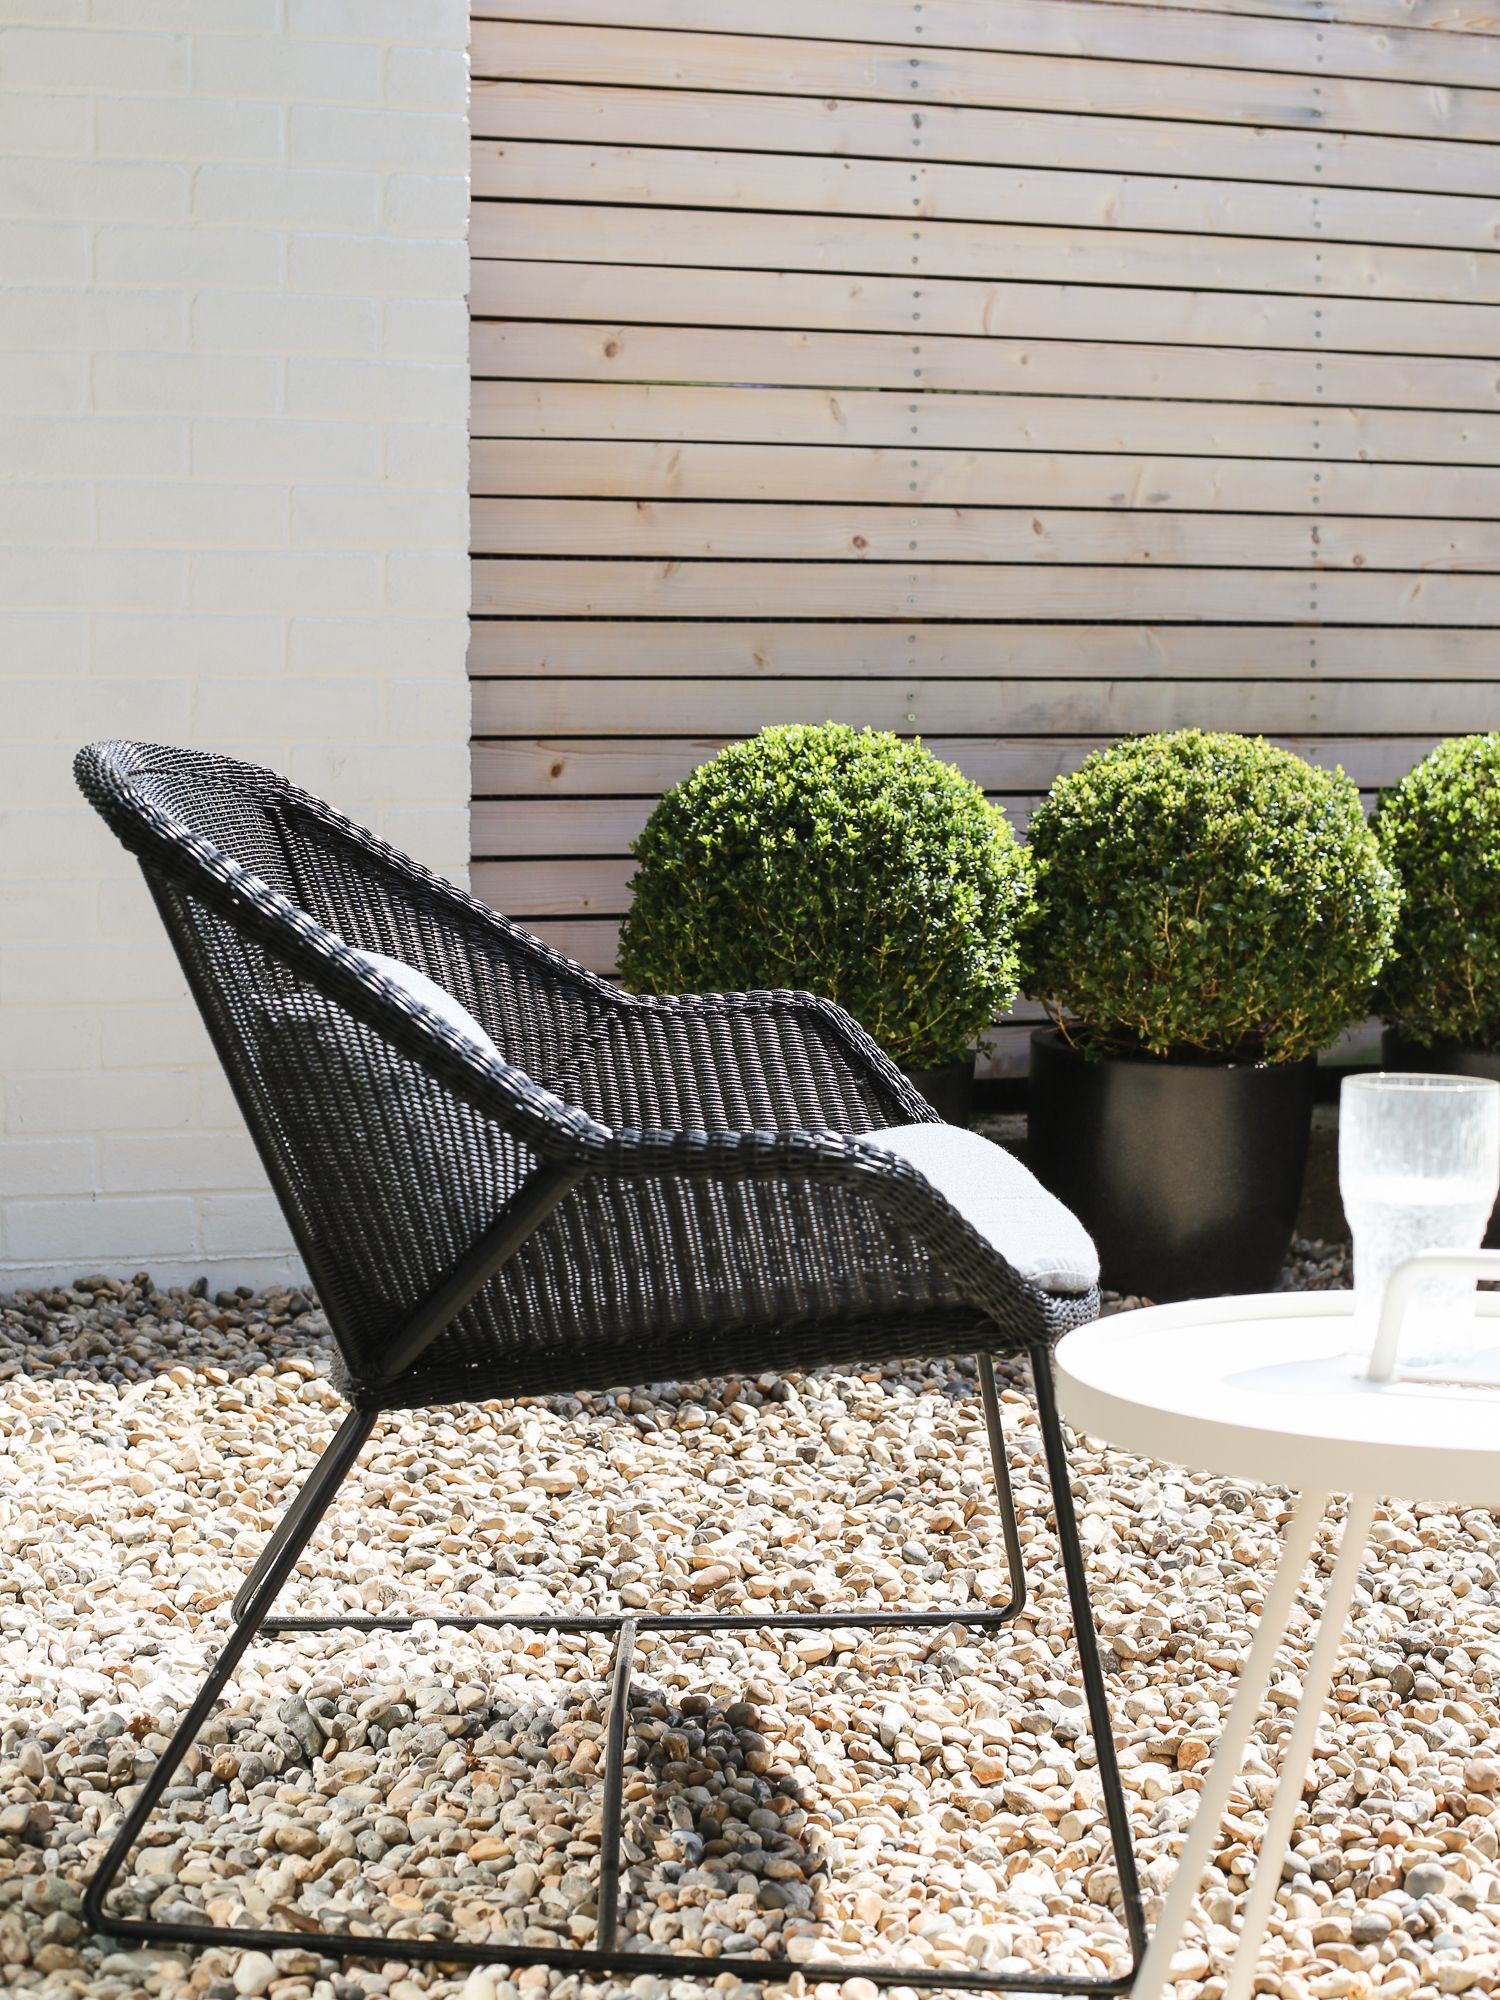 Danish Outdoor Furniture From Cane Line Pool Patio Furniture Patio Design Patio Furniture Layout